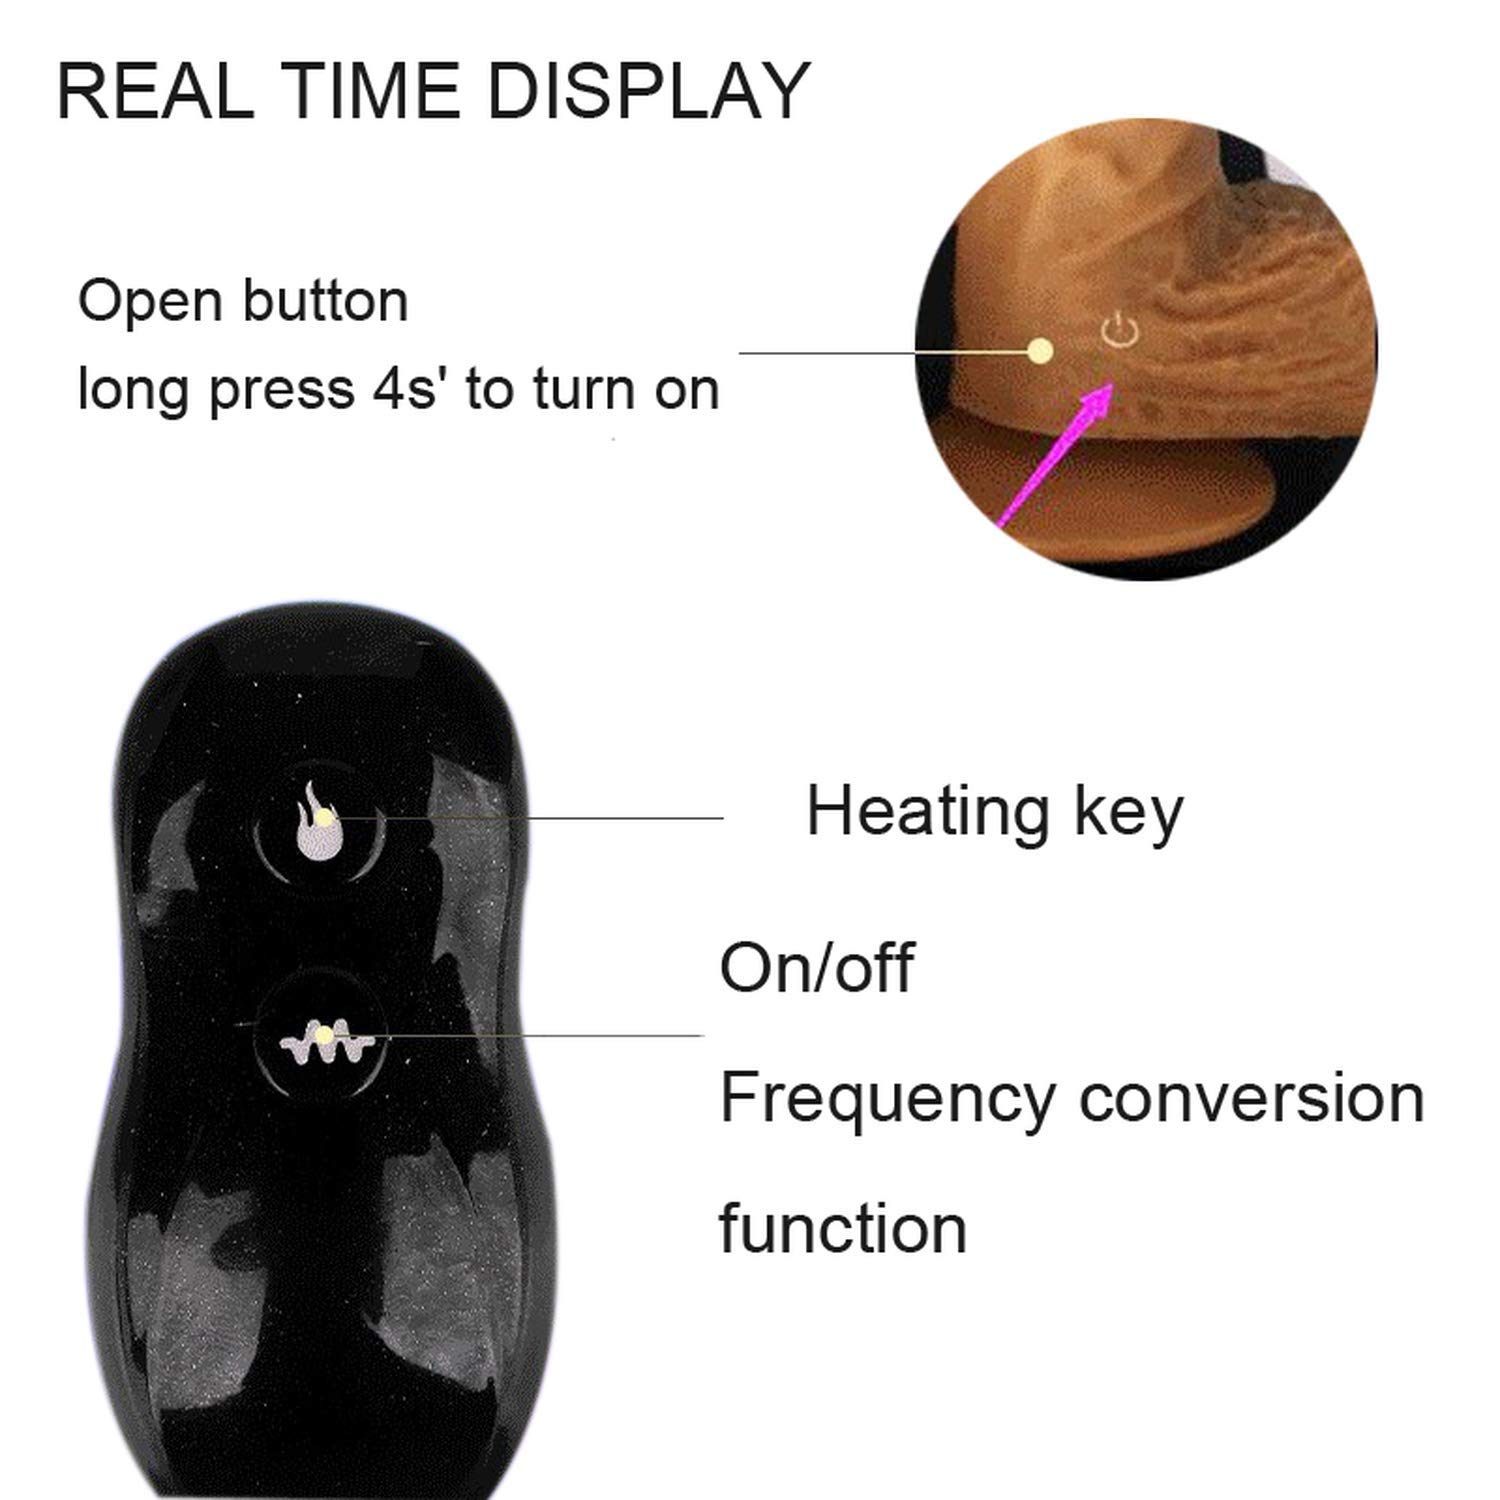 Wireless Remote Control Huge R-Ealistic Vibrator Male Artificial Heated D-Ick Toys for Woman Tshirt,B X 200Mm by Yamig (Image #5)